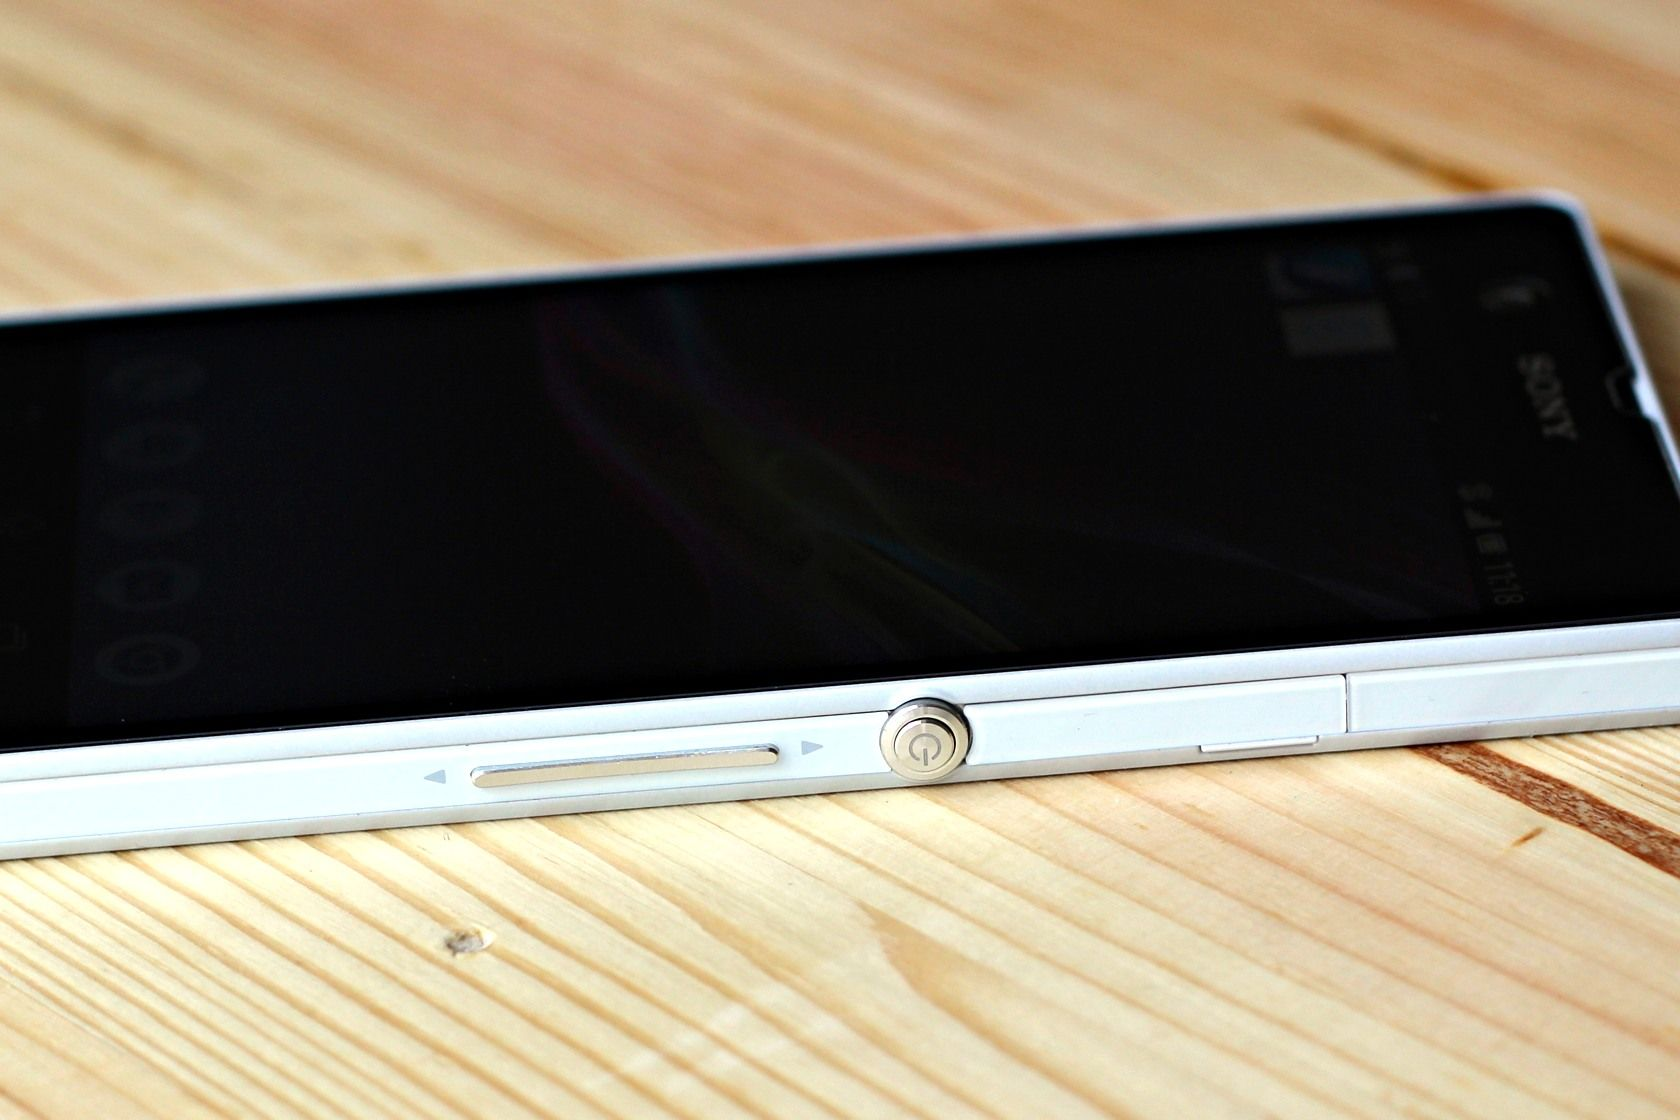 xperia z review